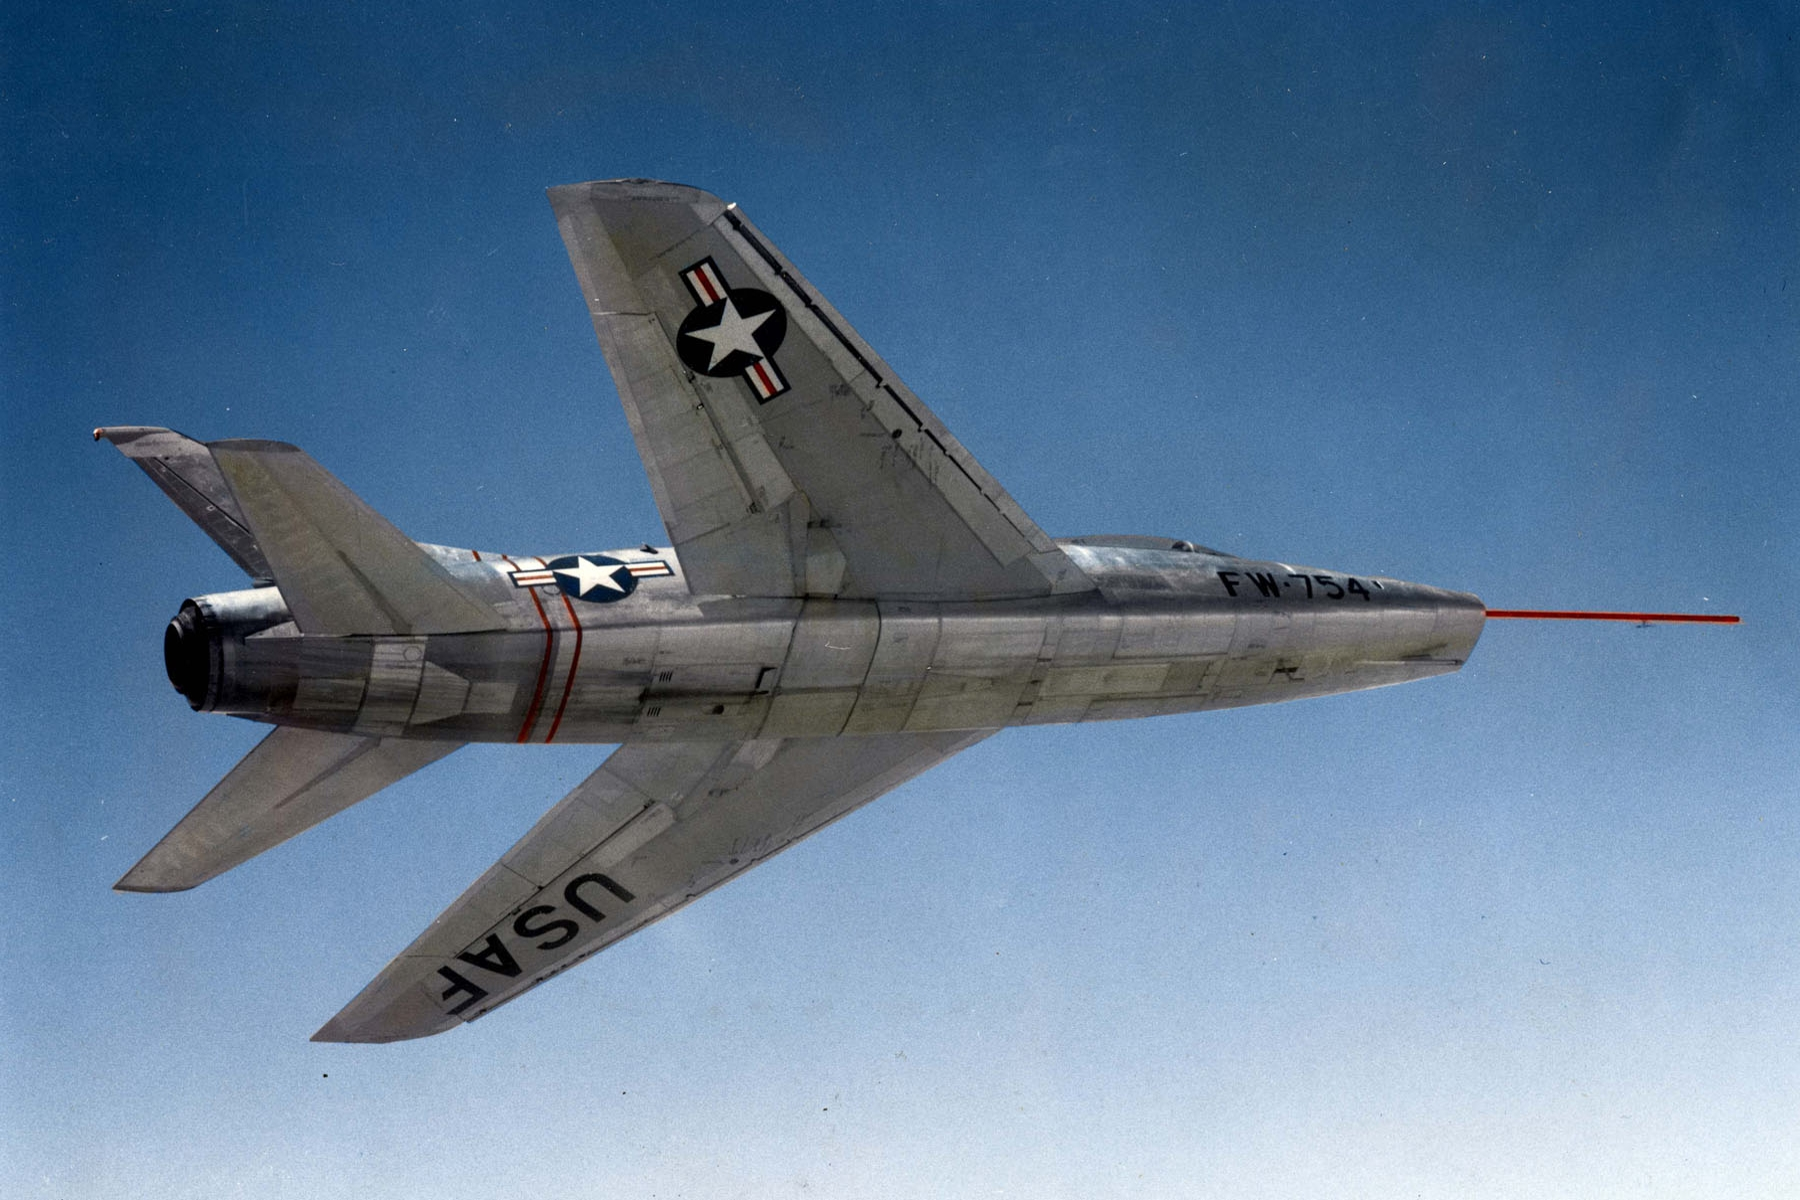 North American YF-100A Super Sabre specifications and photos